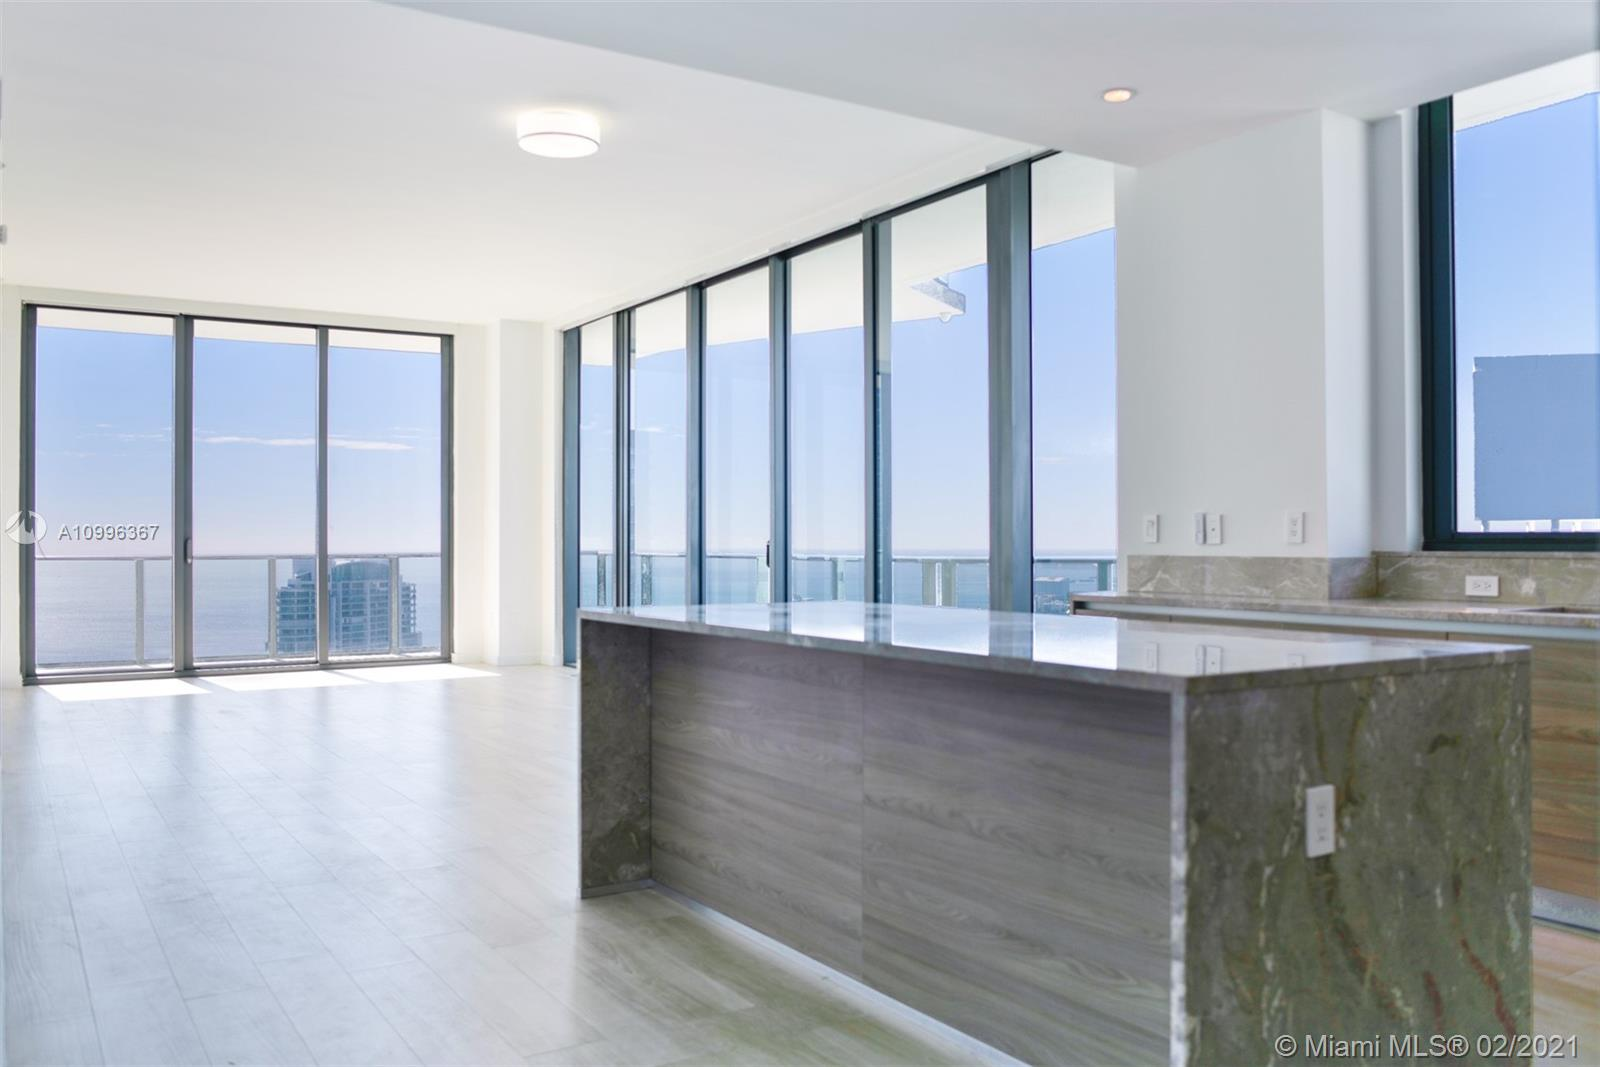 Spectacular upgraded penthouse unit at the luxury SLS Brickell. Relax in this open floor concept while enjoying the panoramic views of Miami Bay and Ocean during the day, Brickell skyline at night, & all the comfort of a 5-star hotel. Very bright corner unit with 4 beds, 3.5 baths, floor-to-ceiling glass windows, sleek wood like porcelain tile floors, california closets, custom made electric window treatments, glistening Italian marble kitchen, Bosch & Miele appliances, 2 assigned parking spaces & a huge wraparound balcony! Amenities include sky roof pool, movie theater, private party room, restaurants, bar, gym, full service spa, valet parking & concierge.